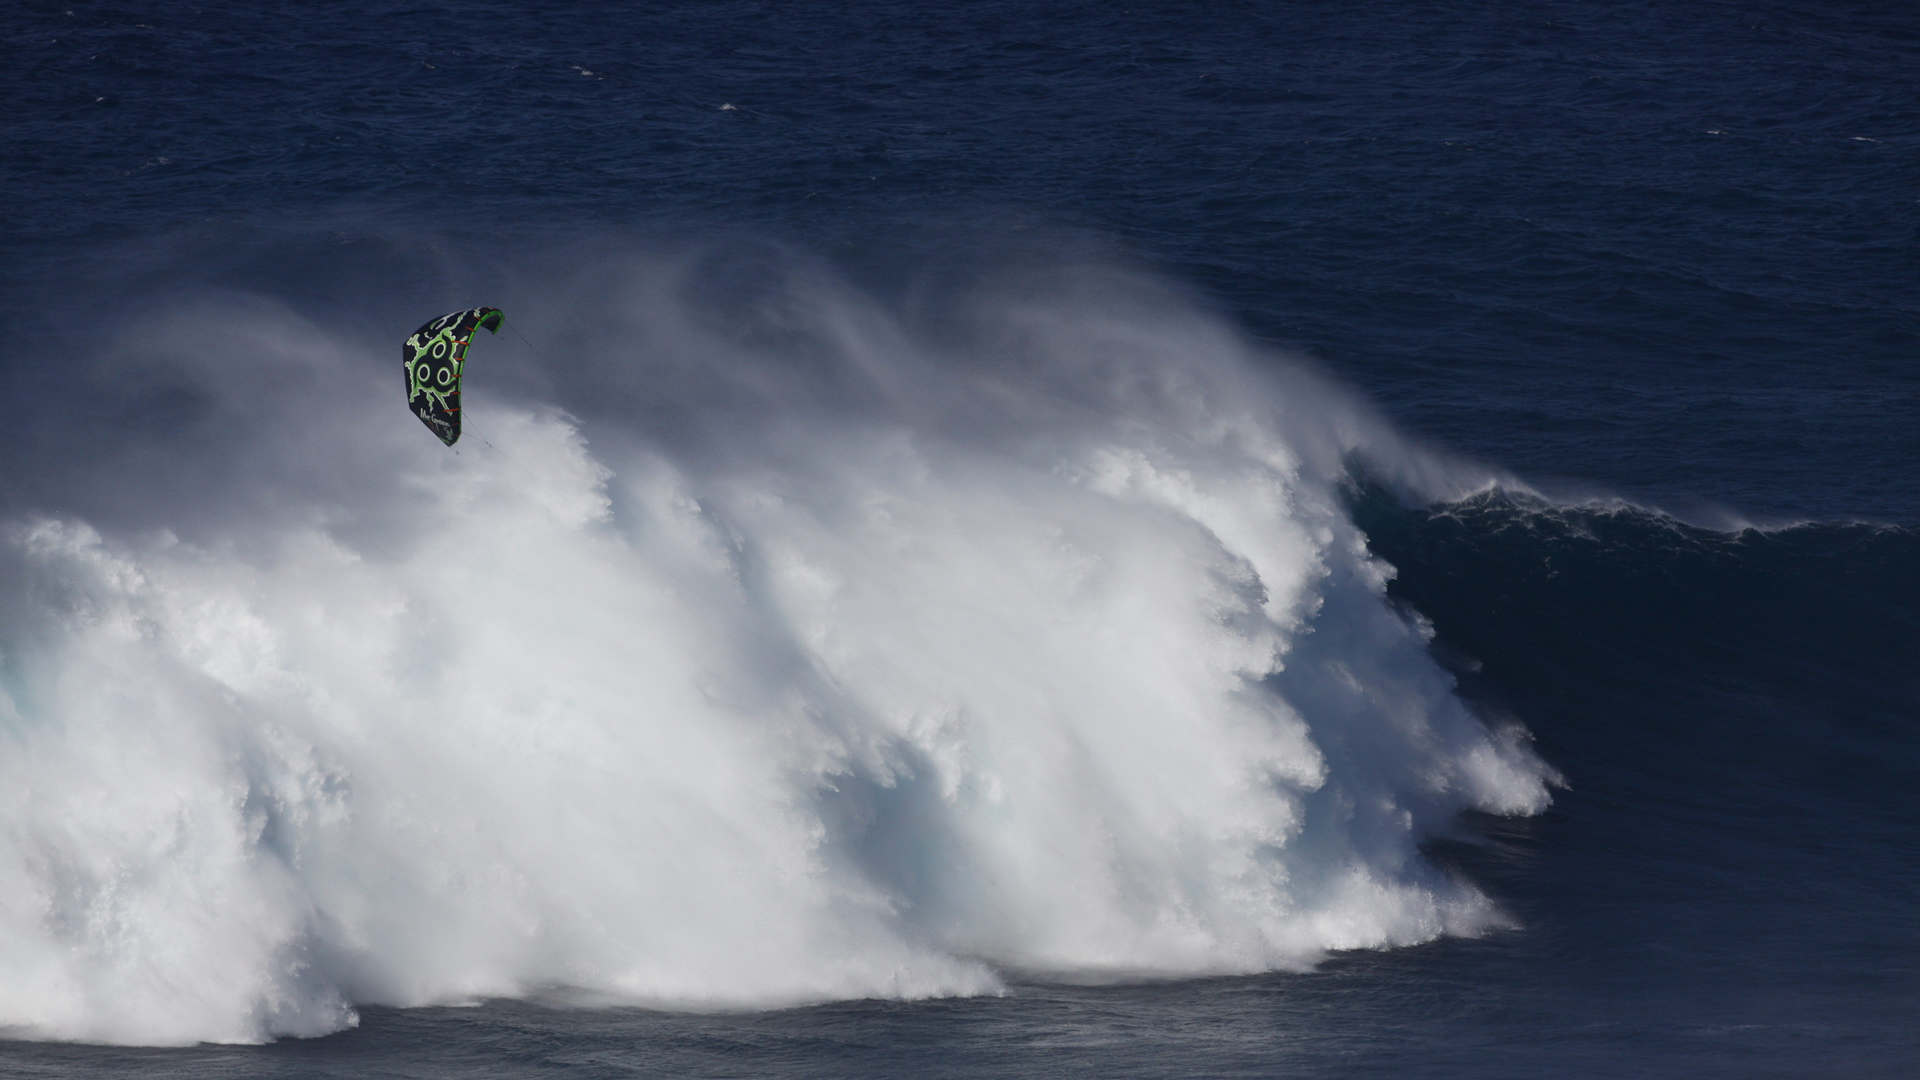 kitesurf wallpaper image - Niccolo Porcella in the grinder on a huge day at Jaws with his Wainman Hawaii Rabbit kite - in resolution: High Definition - HD 16:9 1920 X 1080